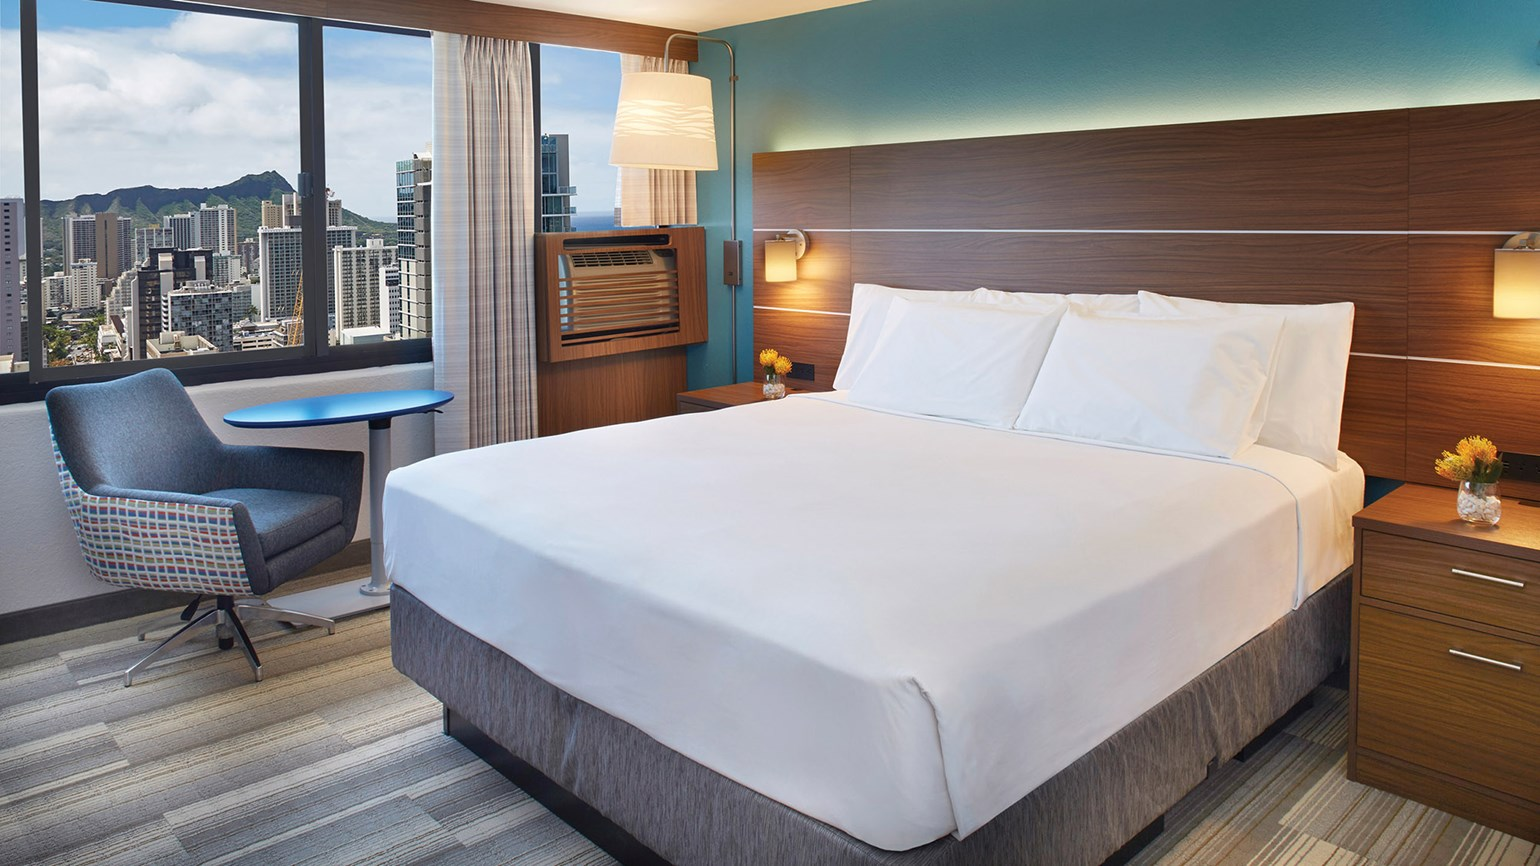 Affordable aloha with Holiday Inn Express